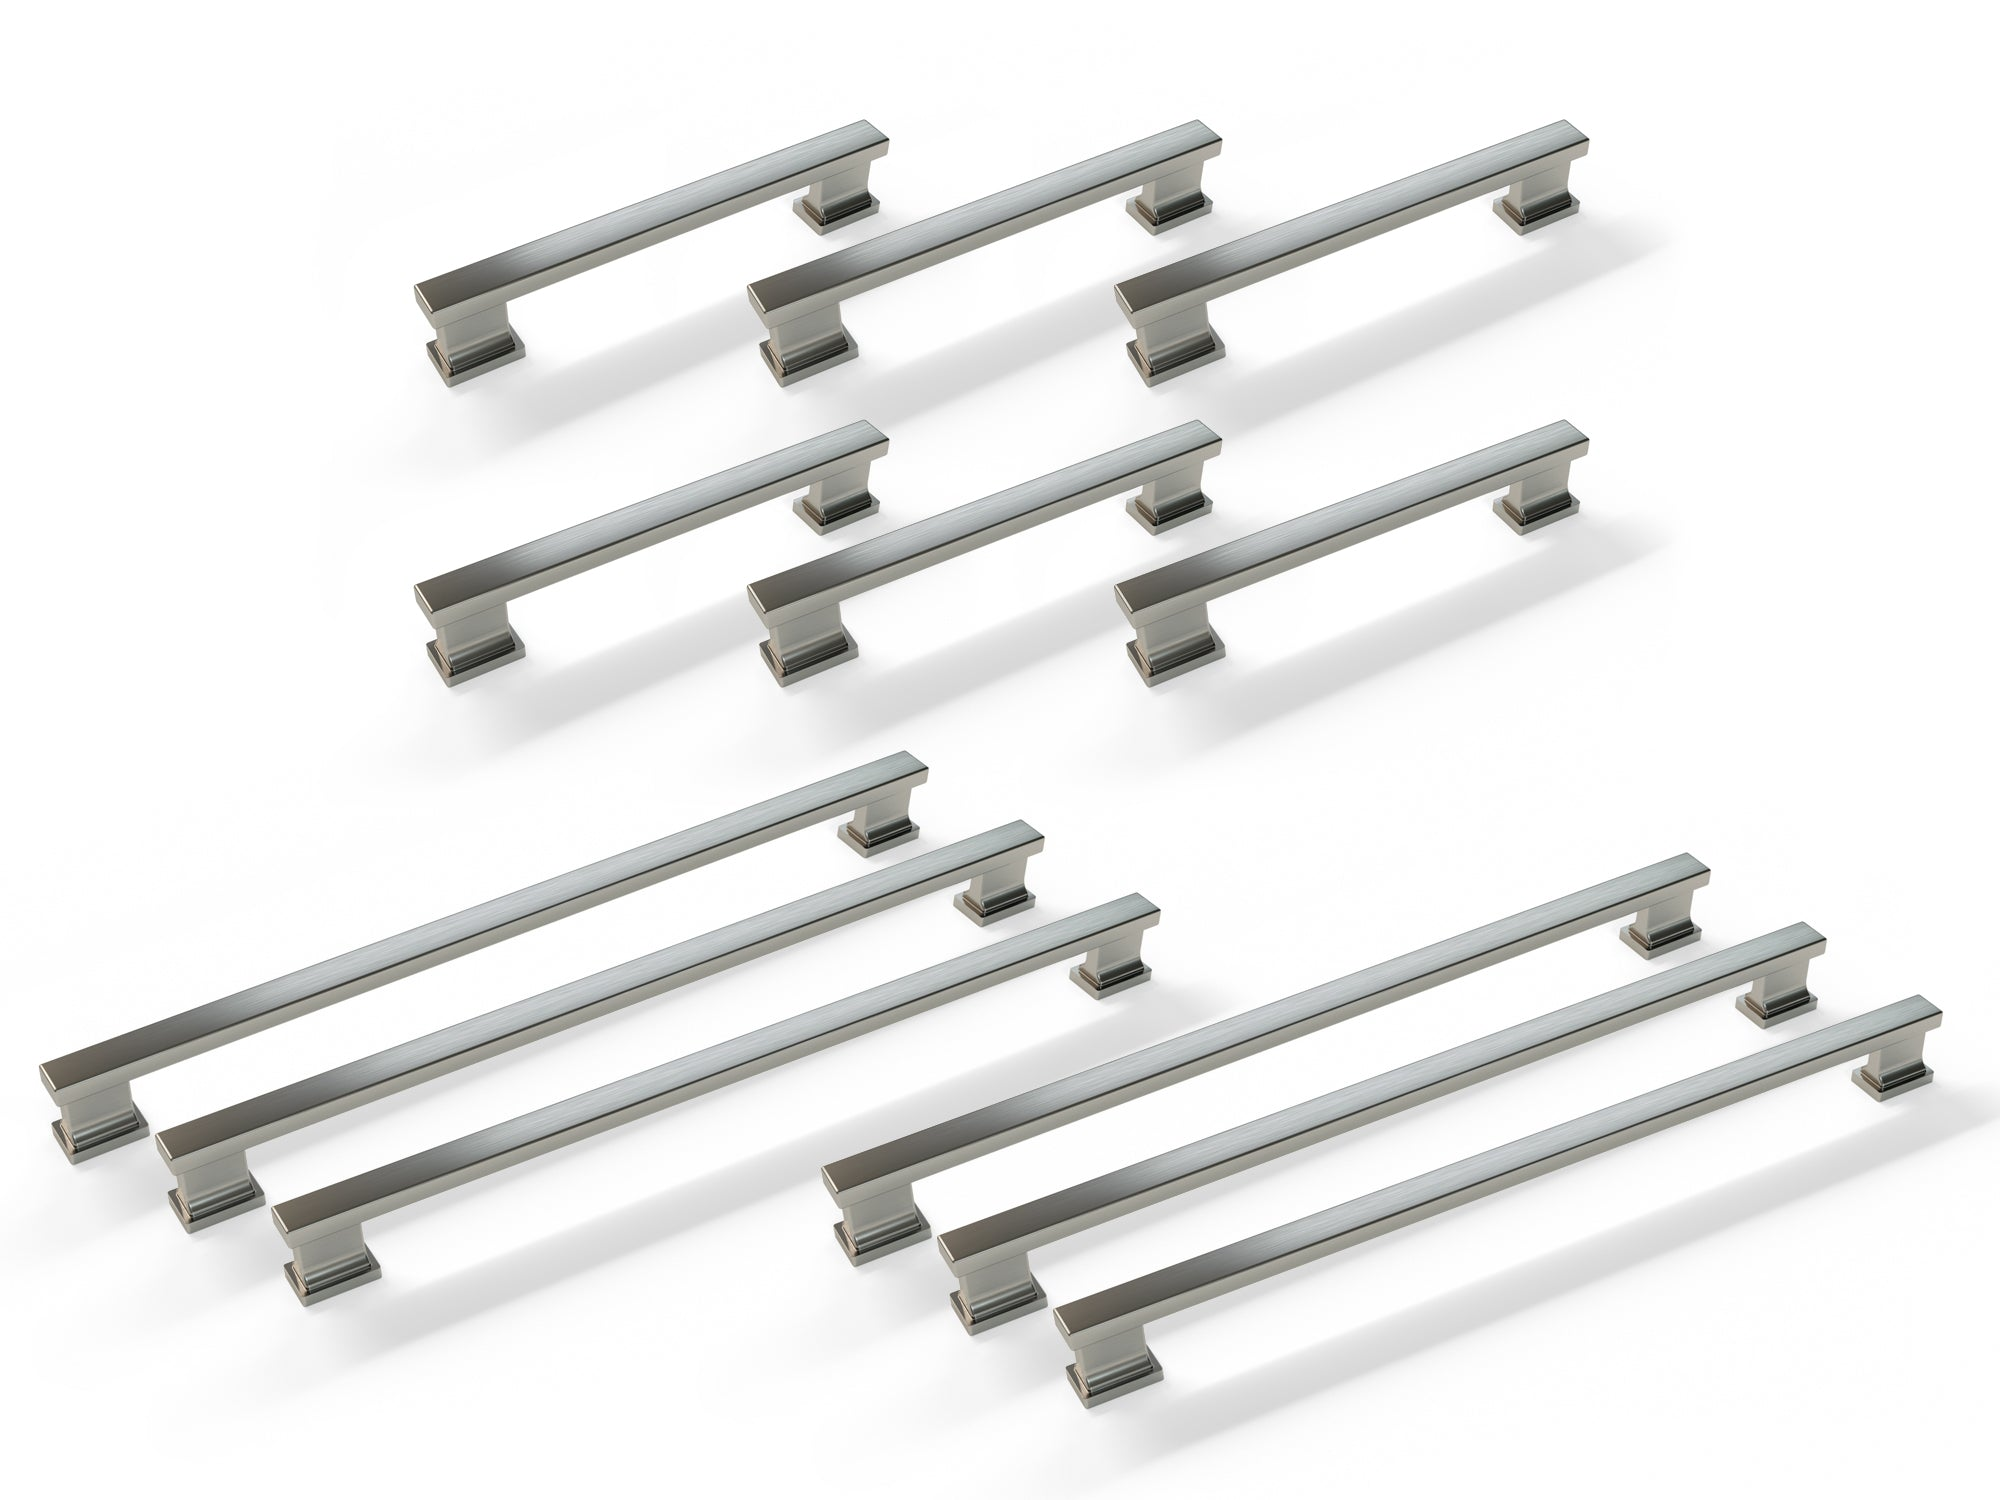 Contemporary Style Handle Pack (6 x Small Handle, 6 x Large Handle)